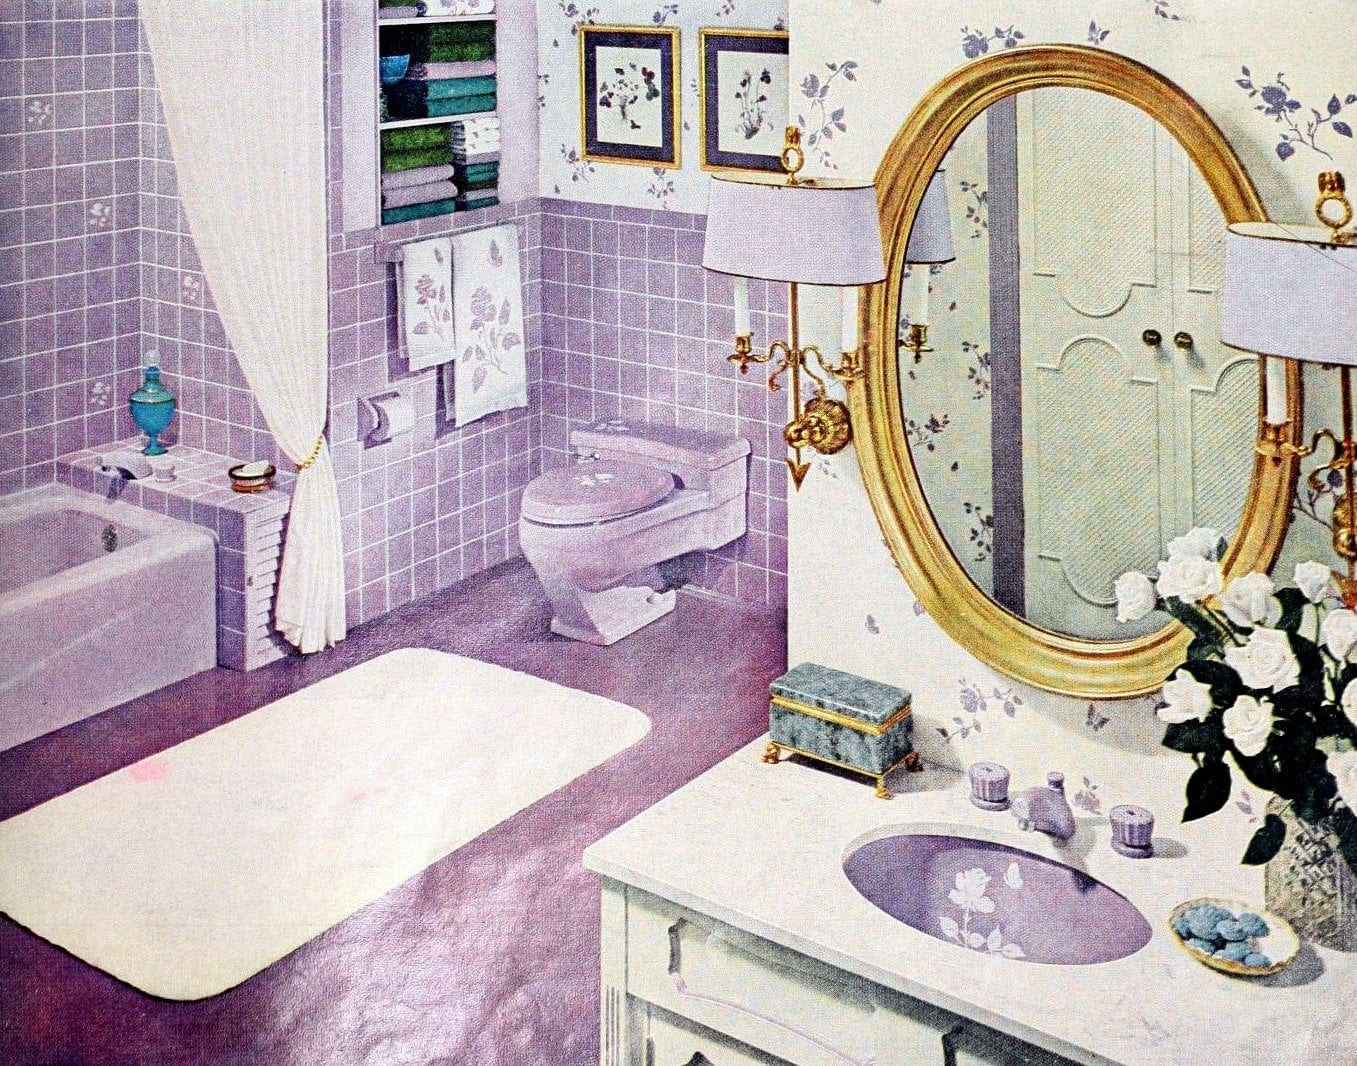 Purple retro 60s bathroom with decorated sinks and tile